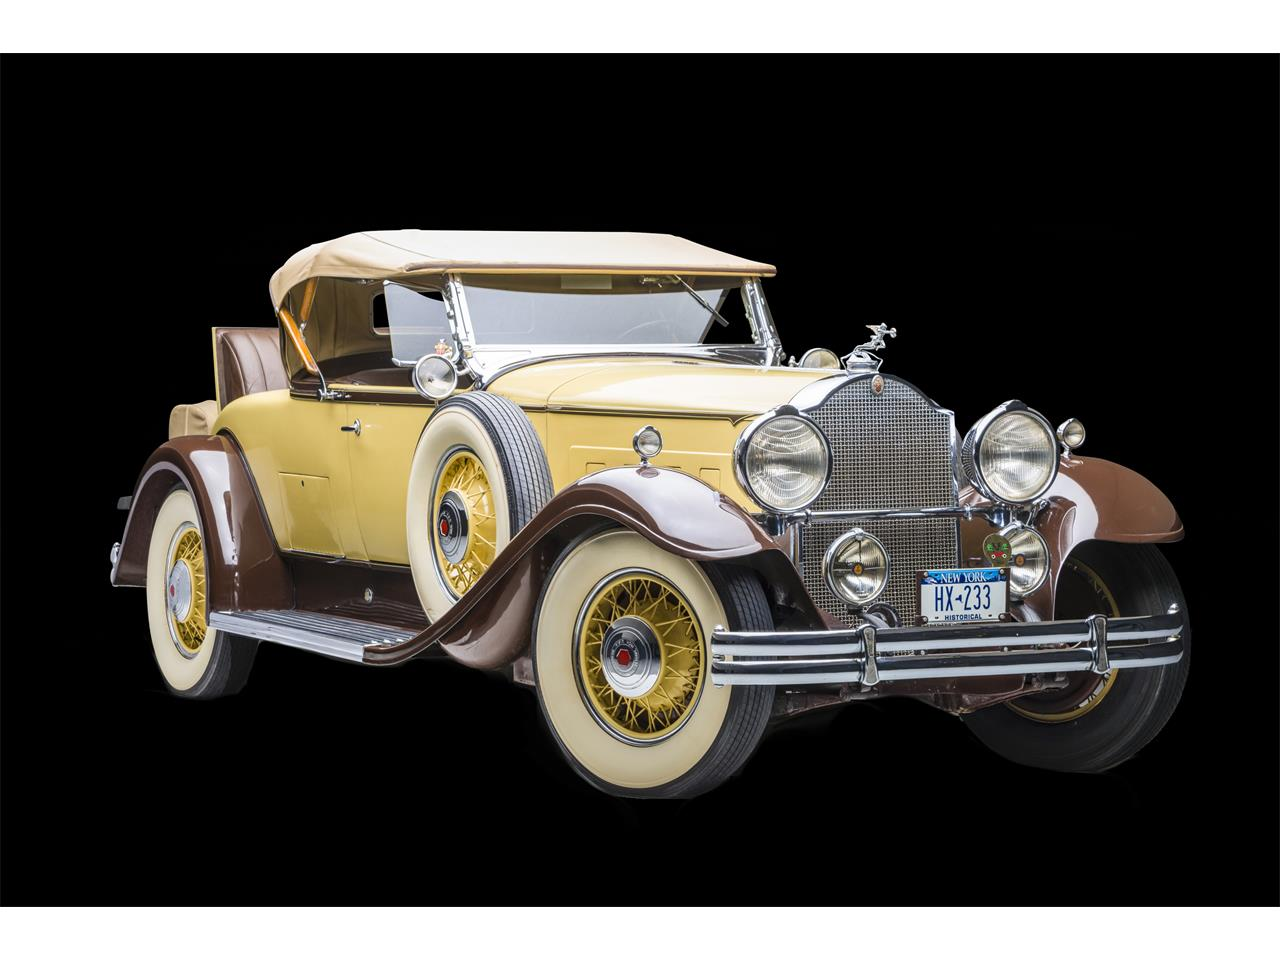 Large Picture of 1931 Packard located in New York - $80,000.00 - QPJM